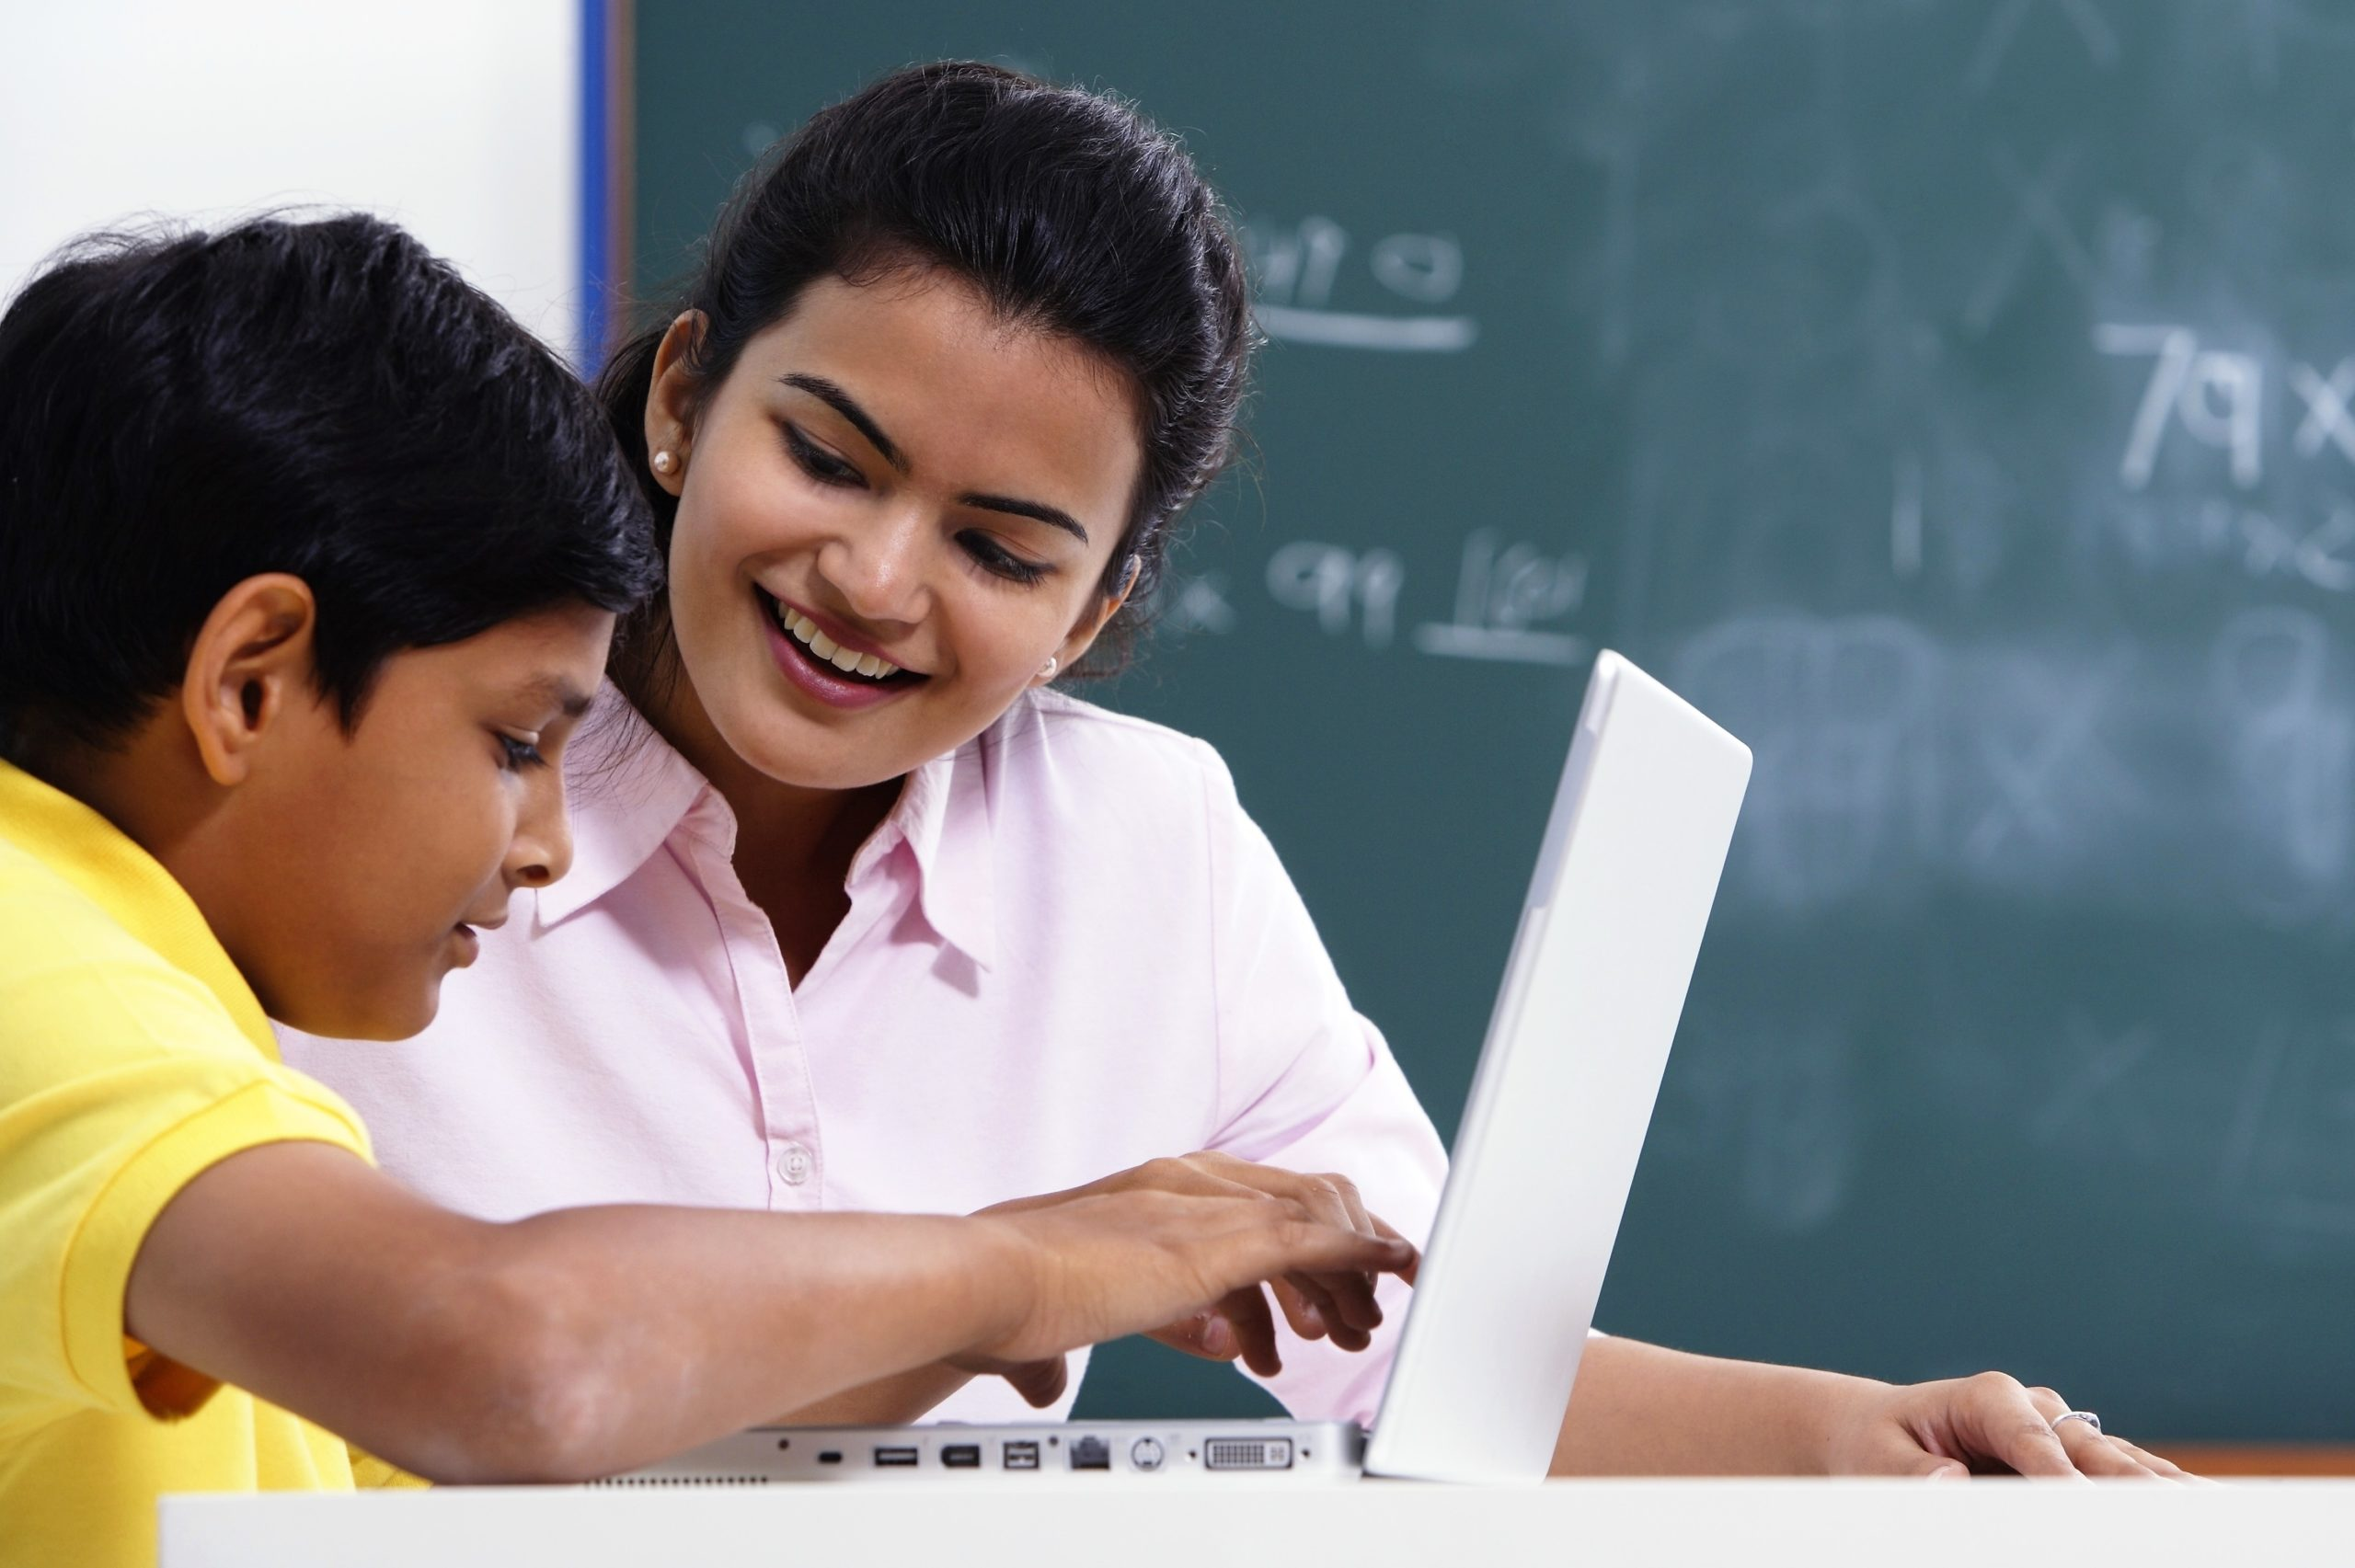 A teachers and student look at a laptop